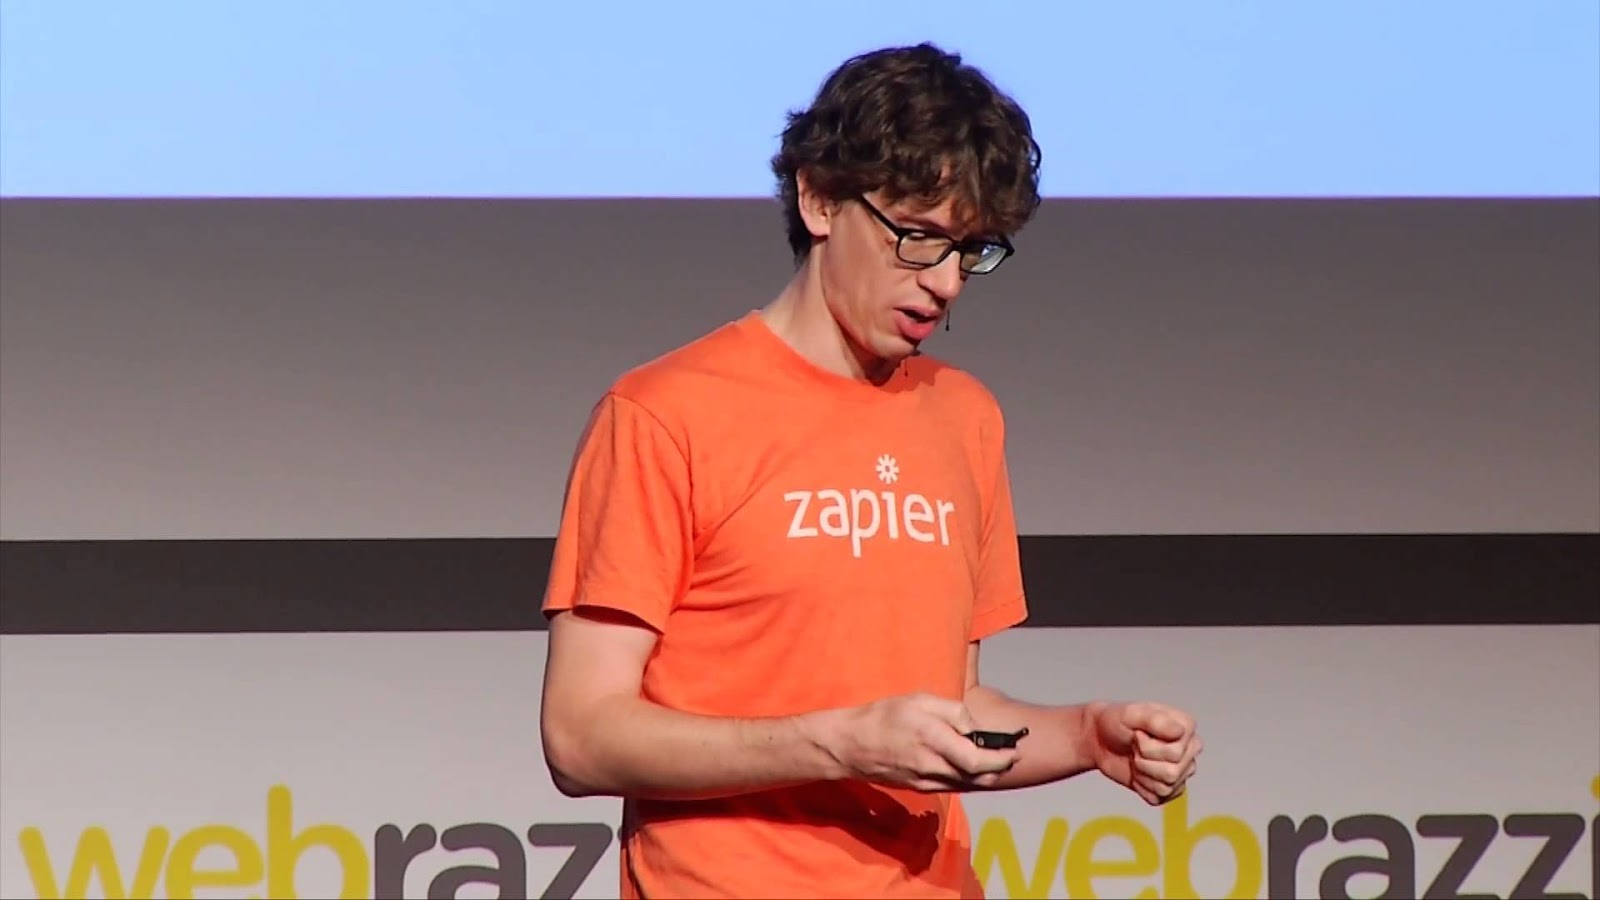 Zapier insights on Interview with CTO and Co-founder of hiring remote engineers